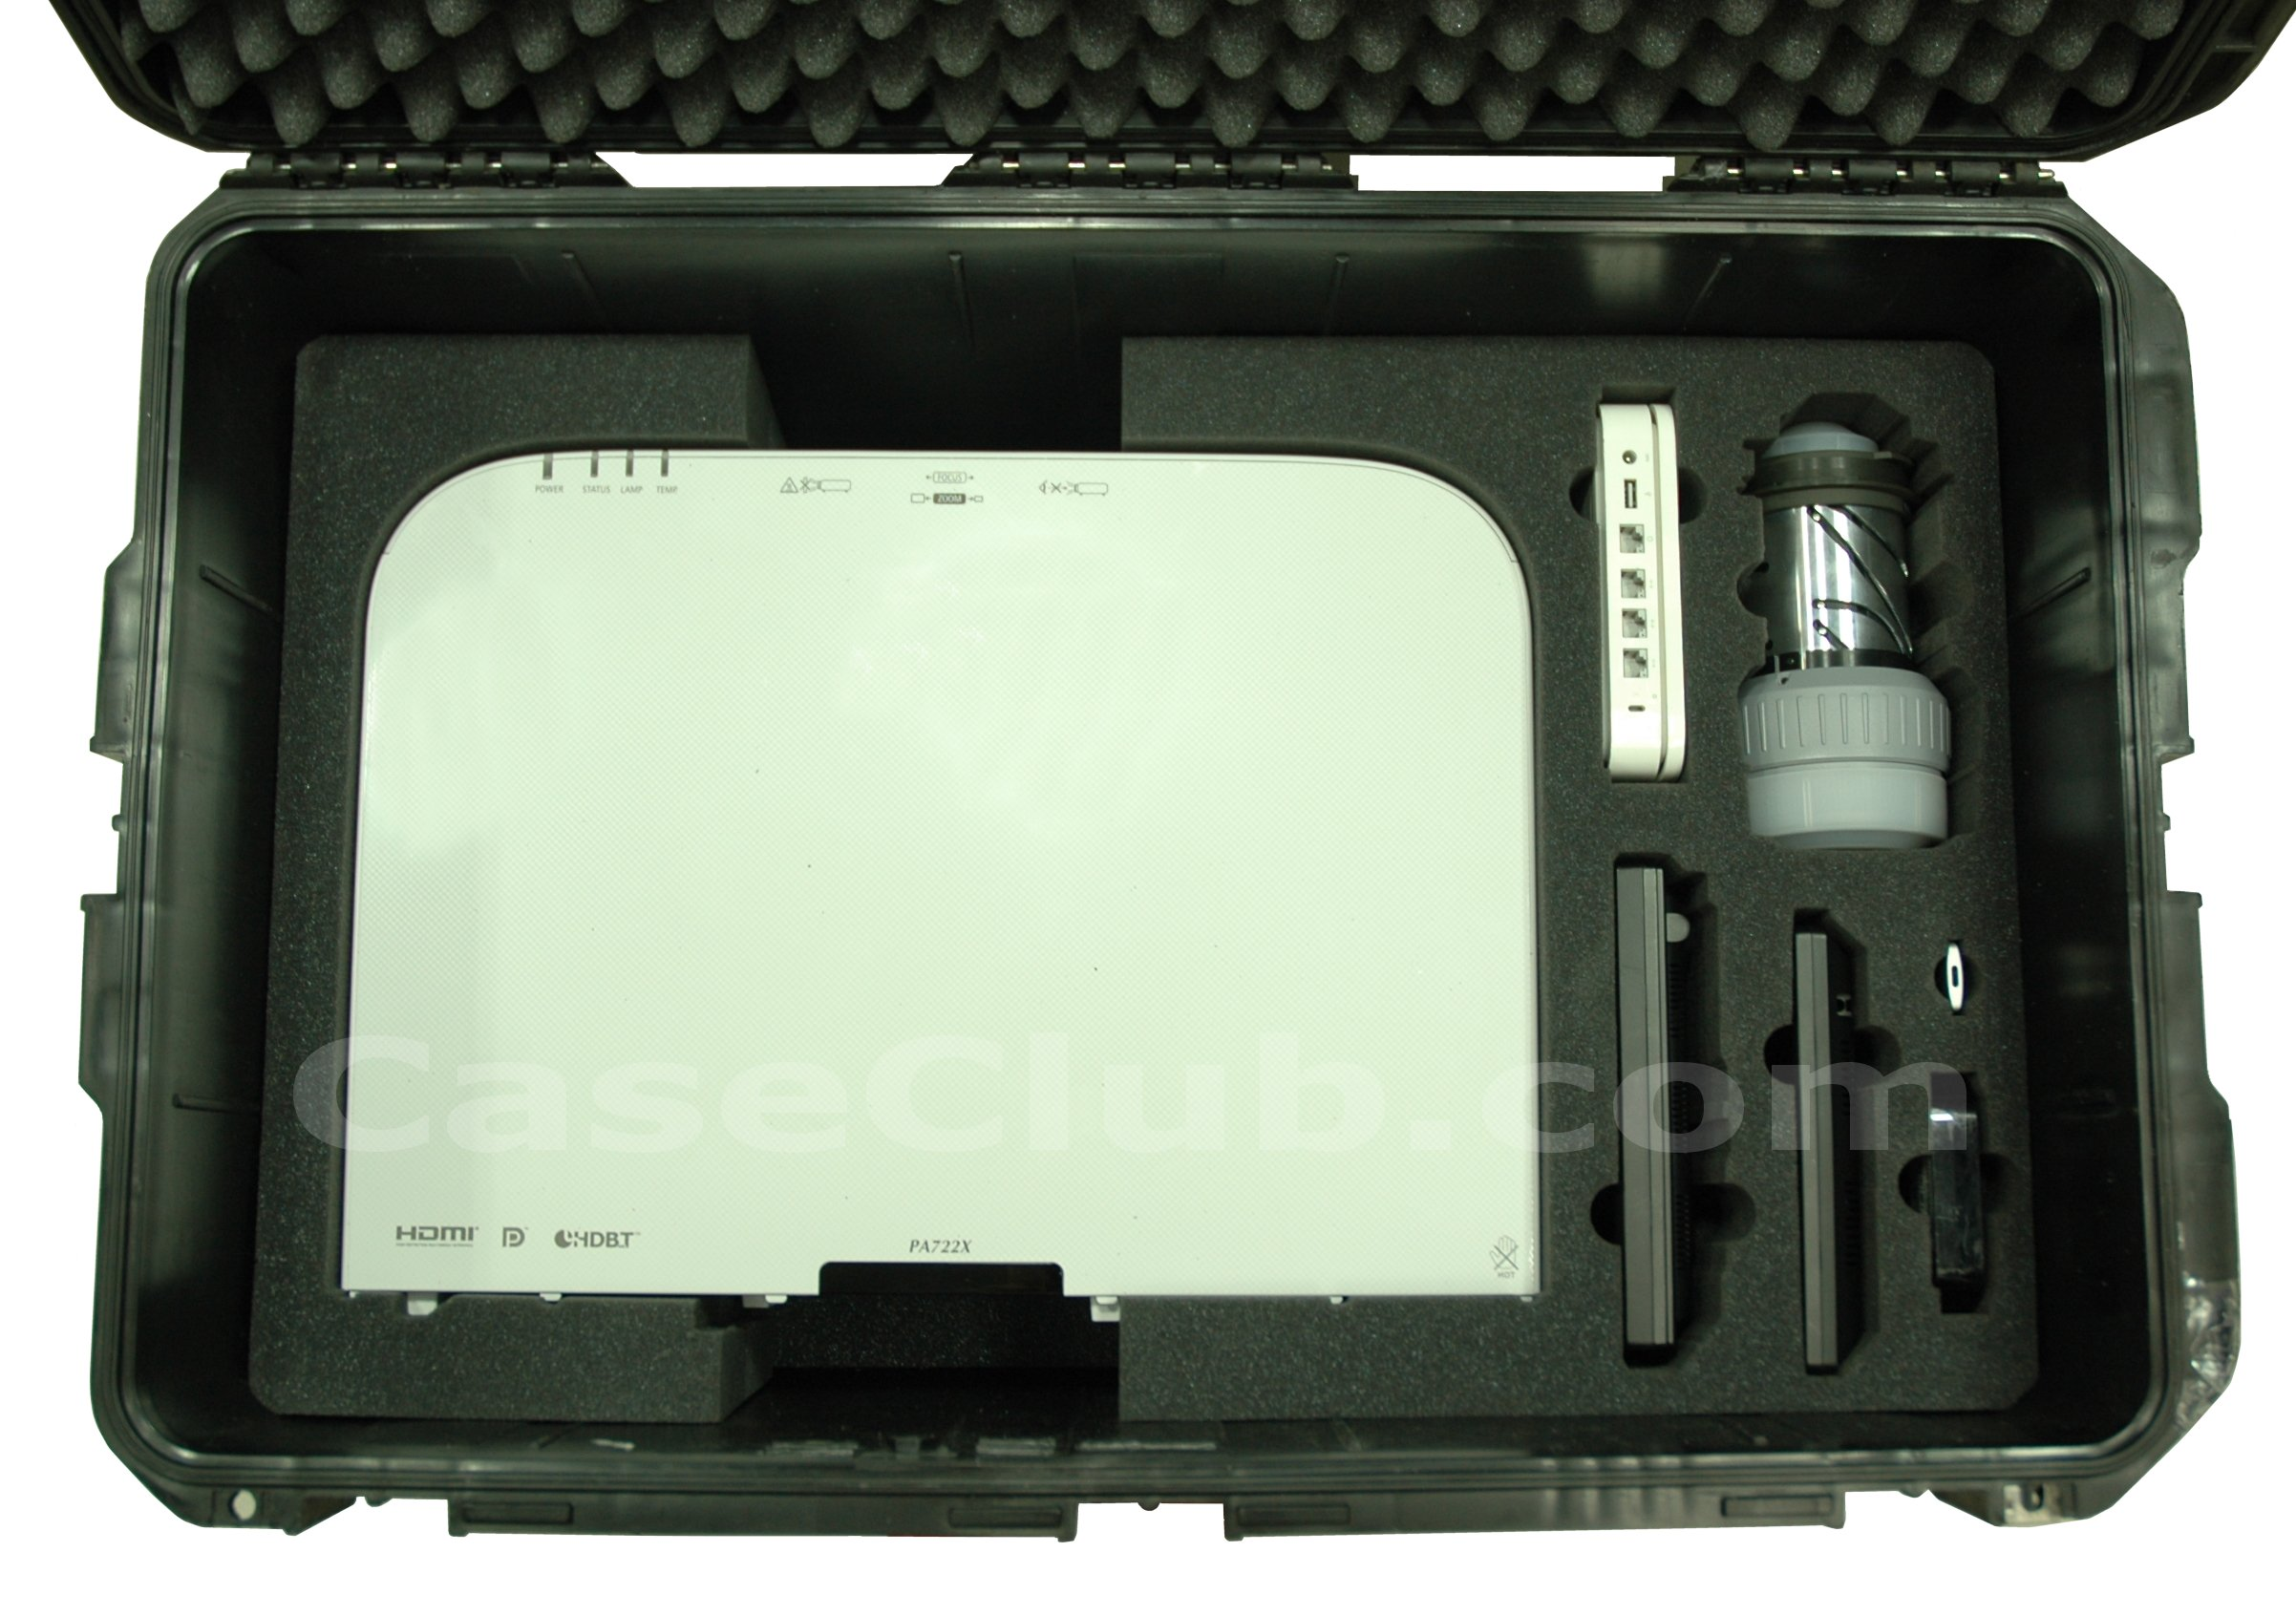 SKB 3I-2918-14 Case Custom Foam Example: FSR CP-200 Dual Channel Switcher